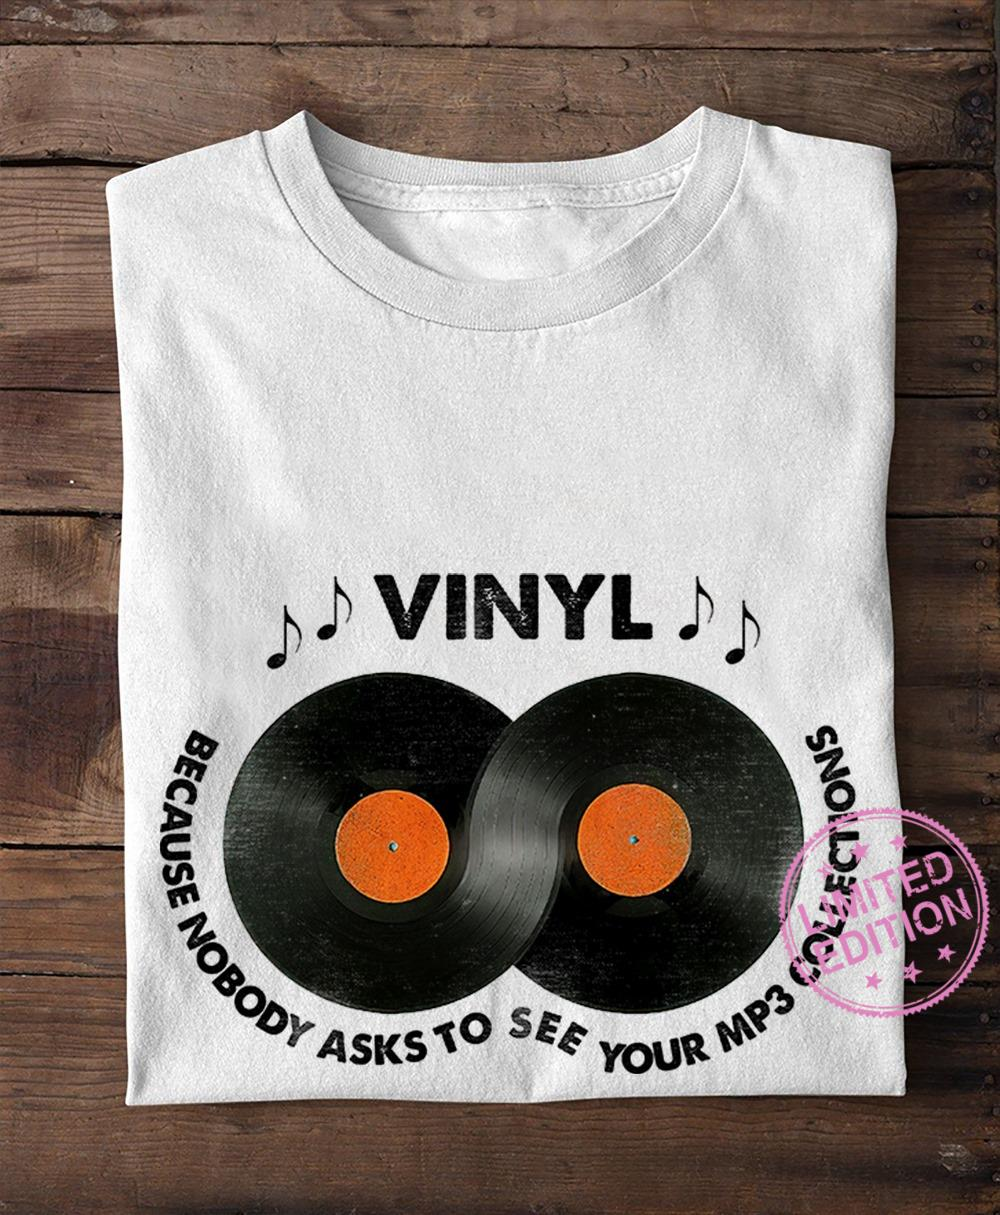 Vinyl because nobody asks to see your mp3 collections shirt